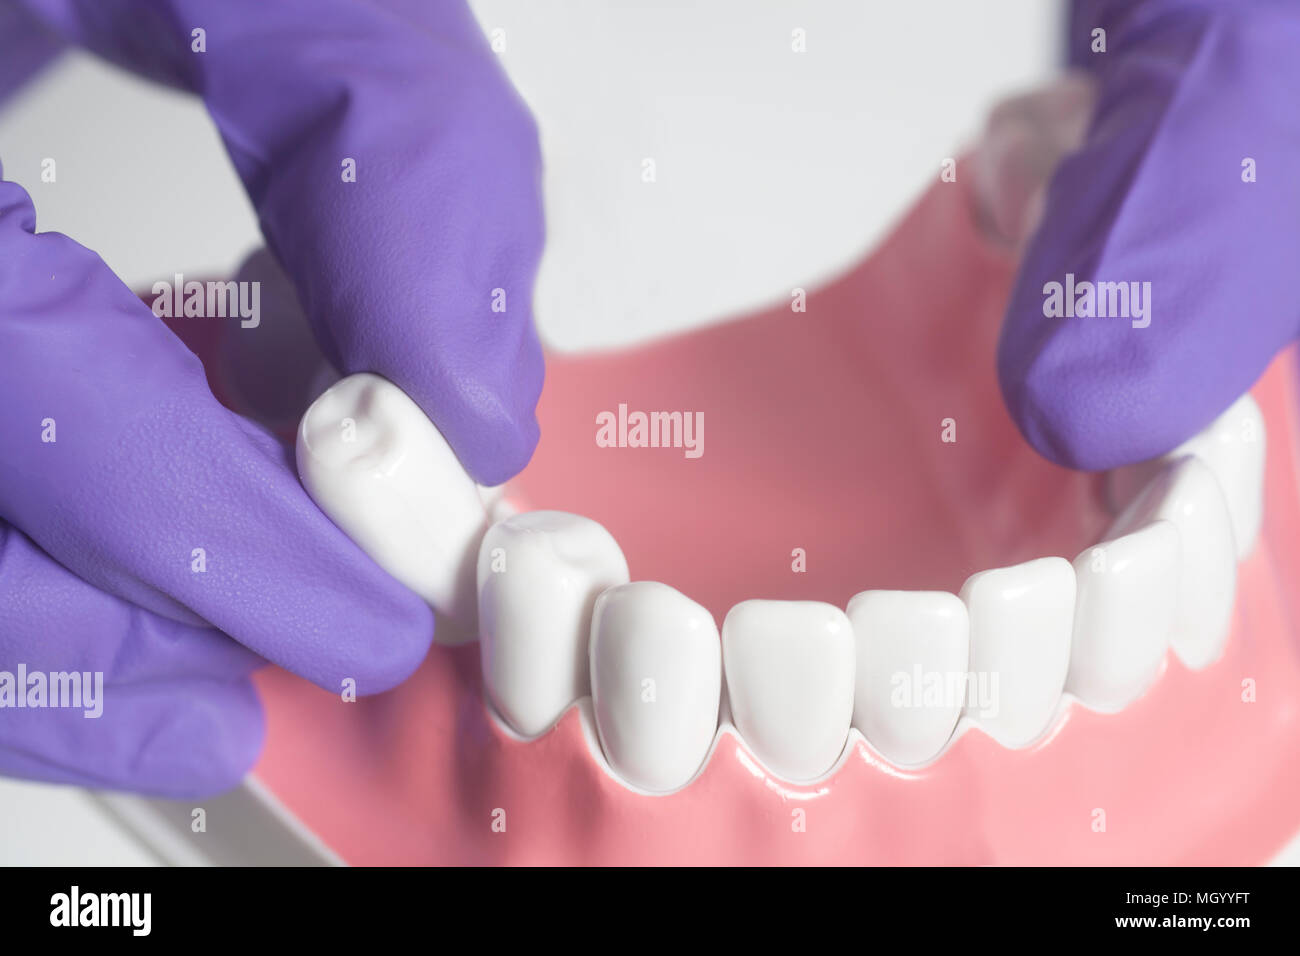 Dental Model Teeth Is Used To Demonstration Of Tooth Extraction By Doctors Isolated On A White Background Stock Photo Alamy